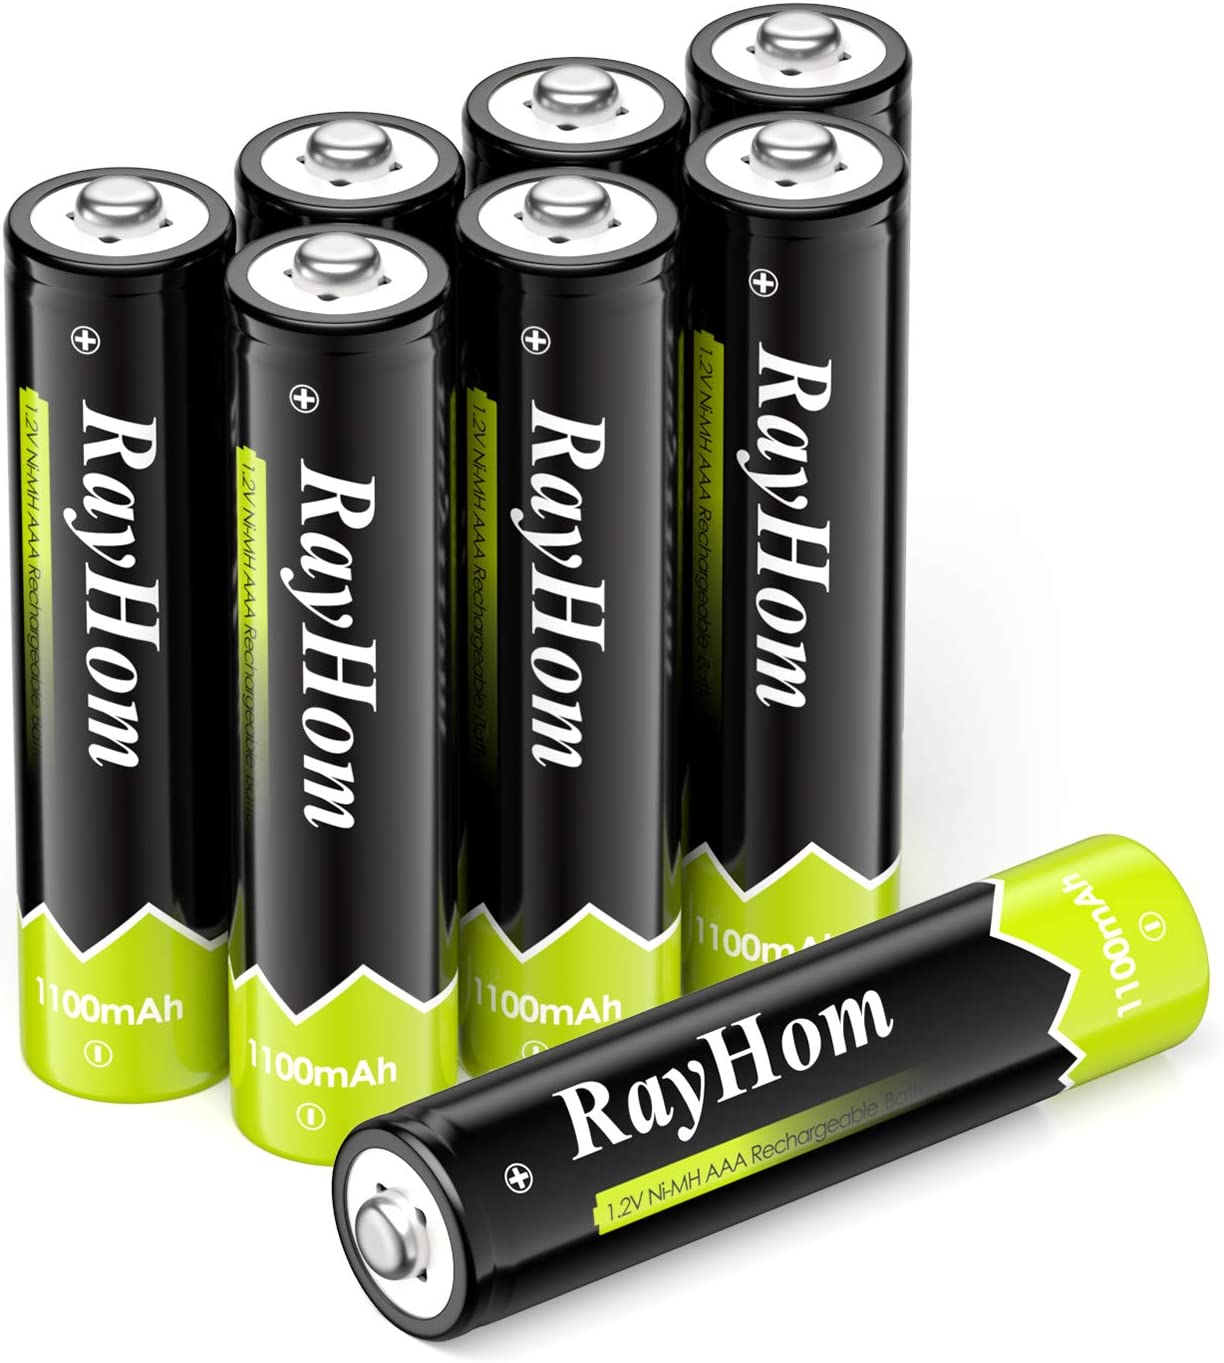 RayHom AAA Rechargeable Batteries 1100mAh Ni-MH Battery (8 Pack)